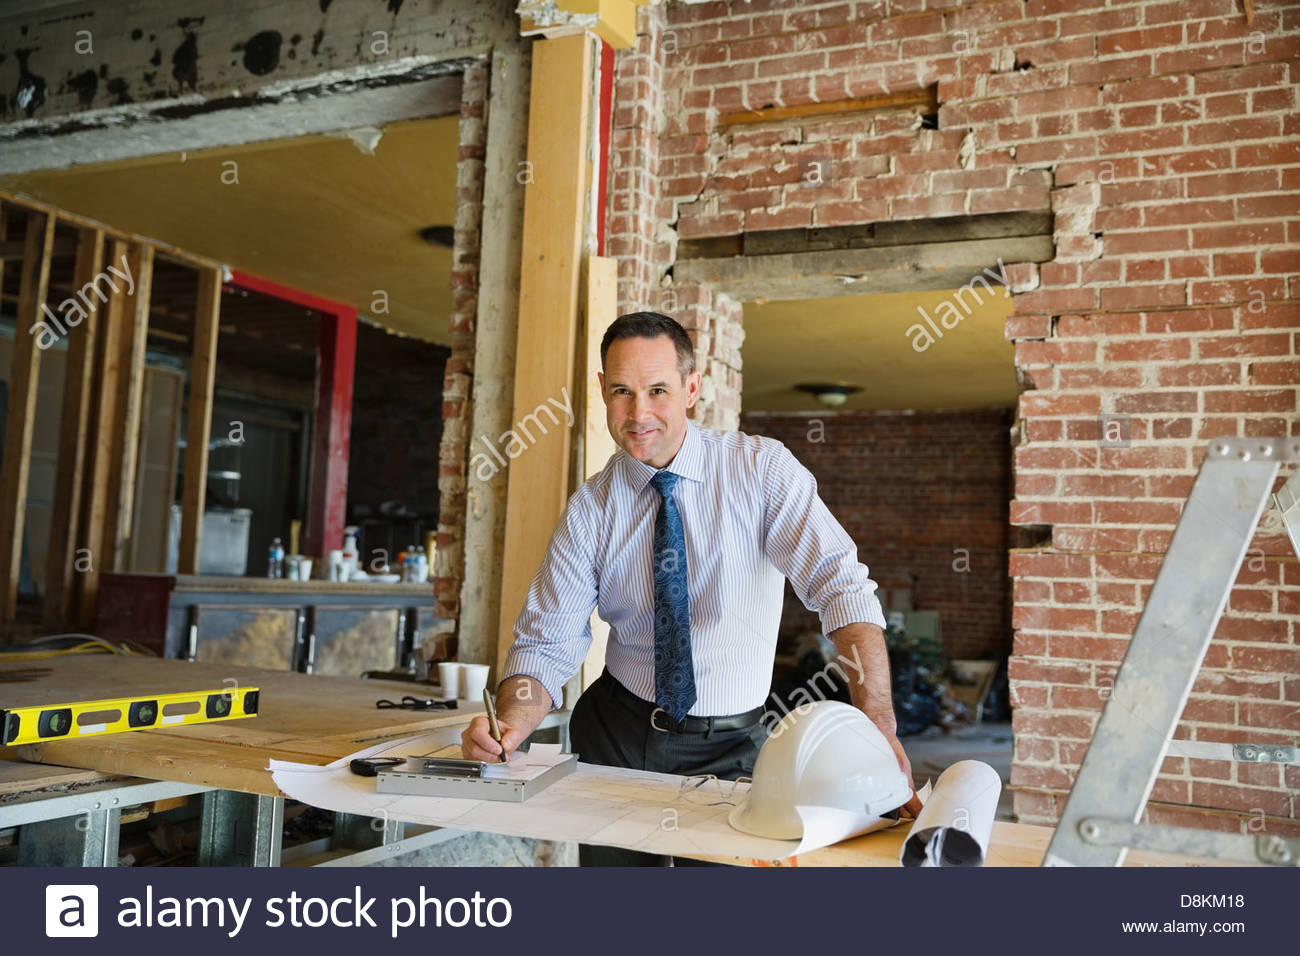 Portrait of male architect writing notes on work order at construction site - Stock Image